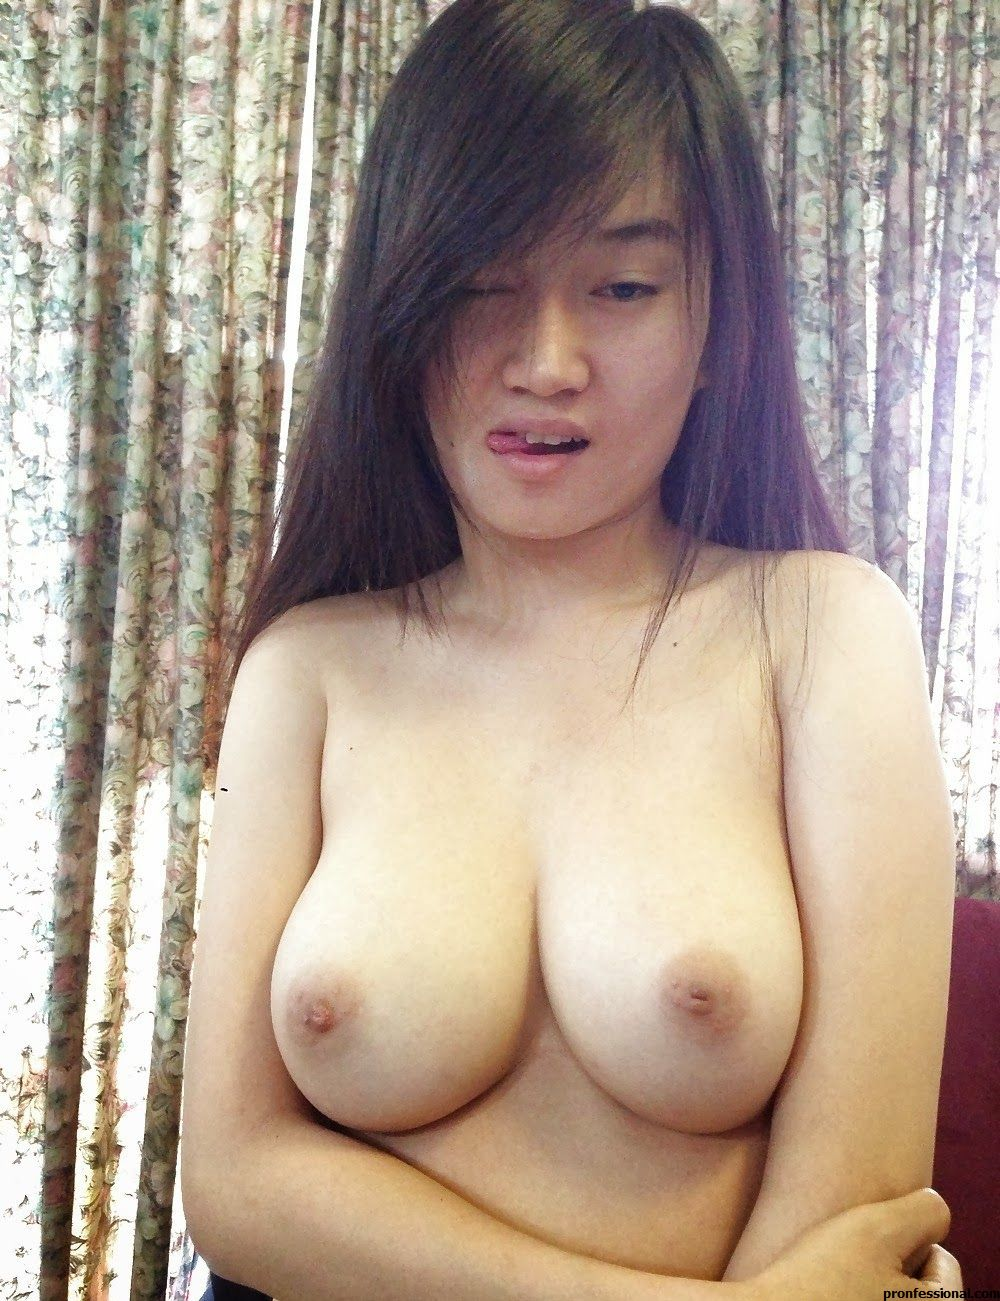 Pinay naked boobs pictures, fresh ass pussy